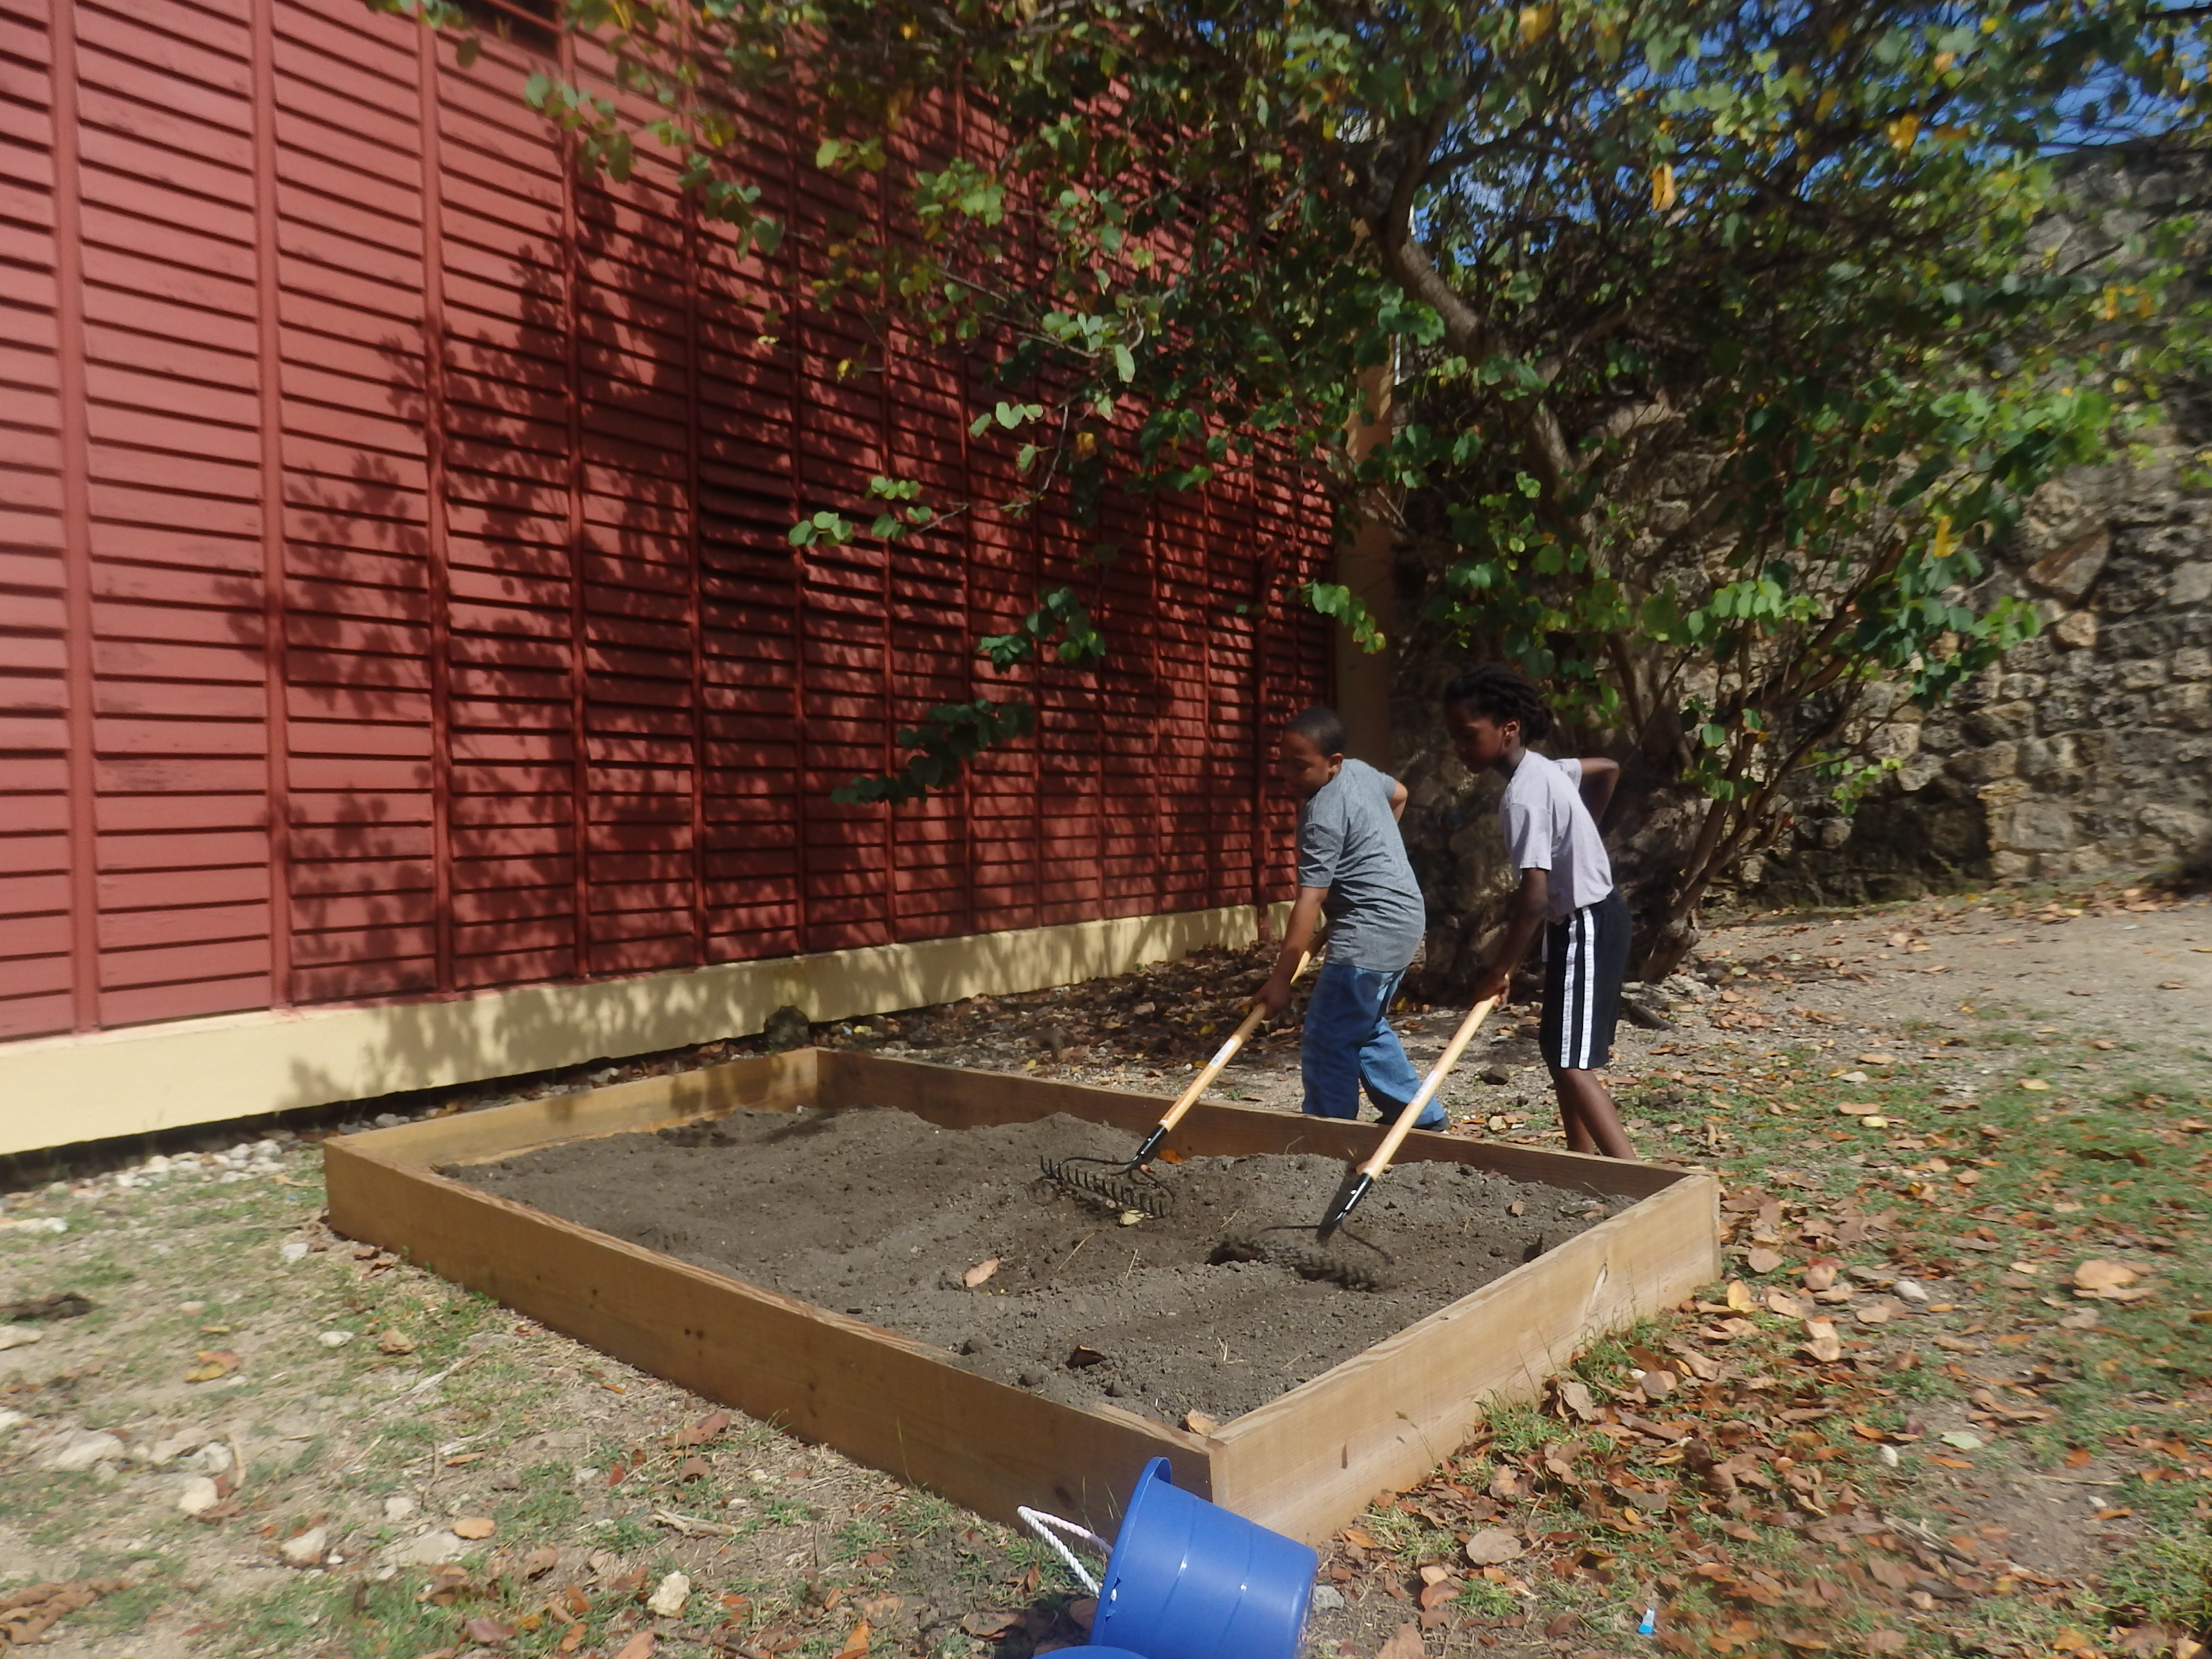 Lew Muckle Students Build New Box Gardens and Repair Old Ones